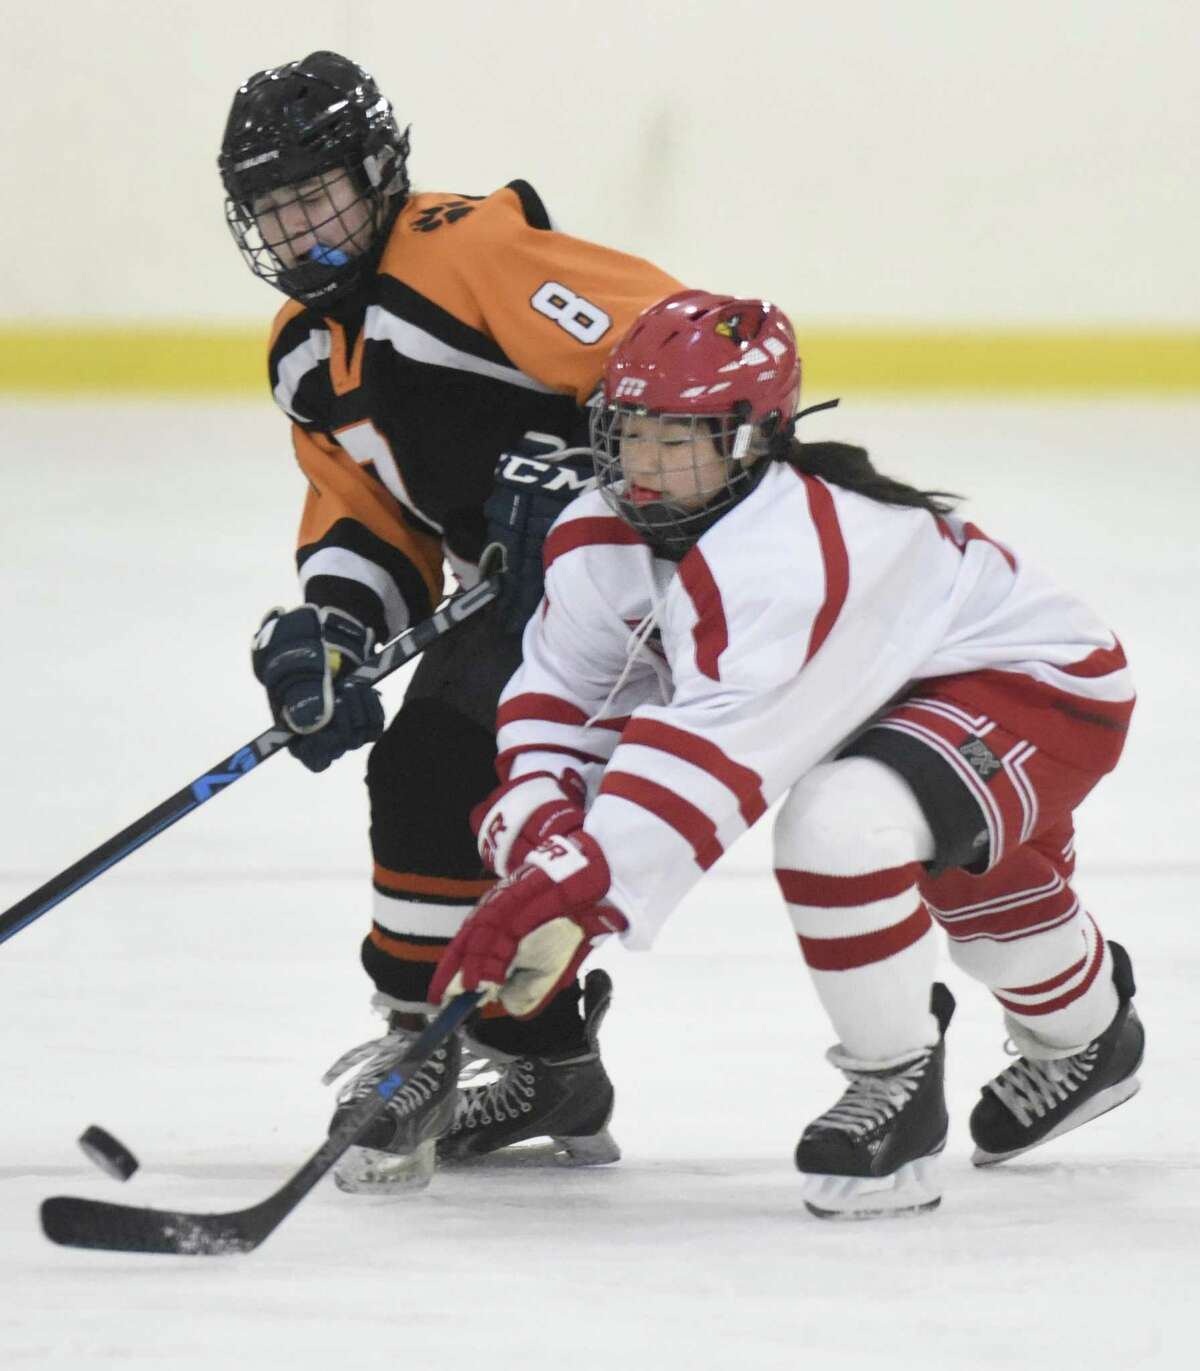 Greenwich's Emiri Fukuchi, right, battles for the puck with Ridgefield/Danbury's Emily Stefanelli during a game on Jan. 29, 2018 at Dorothy Hamill Rink in Greenwich.